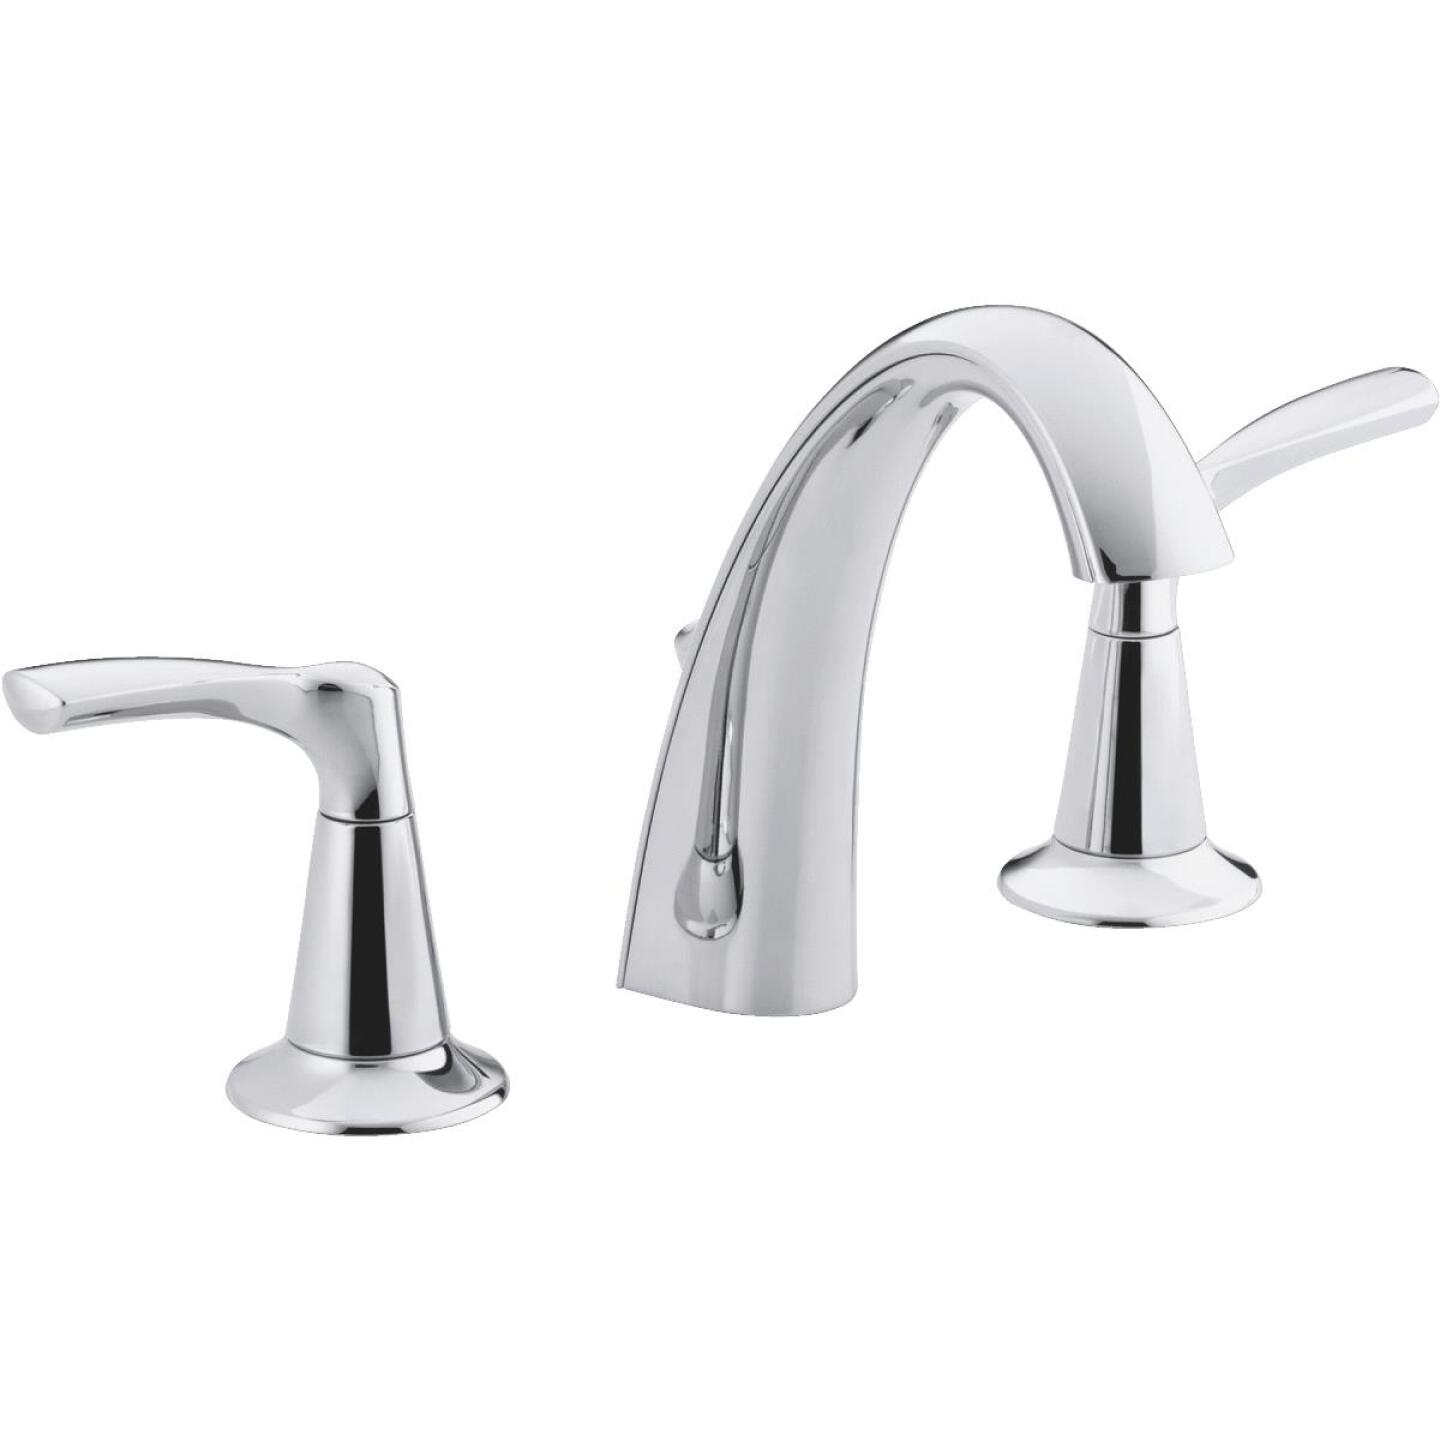 Kohler Mistos Chrome 2-Handle Lever 8 In. Widespread Bathroom Faucet with Pop-Up Image 1